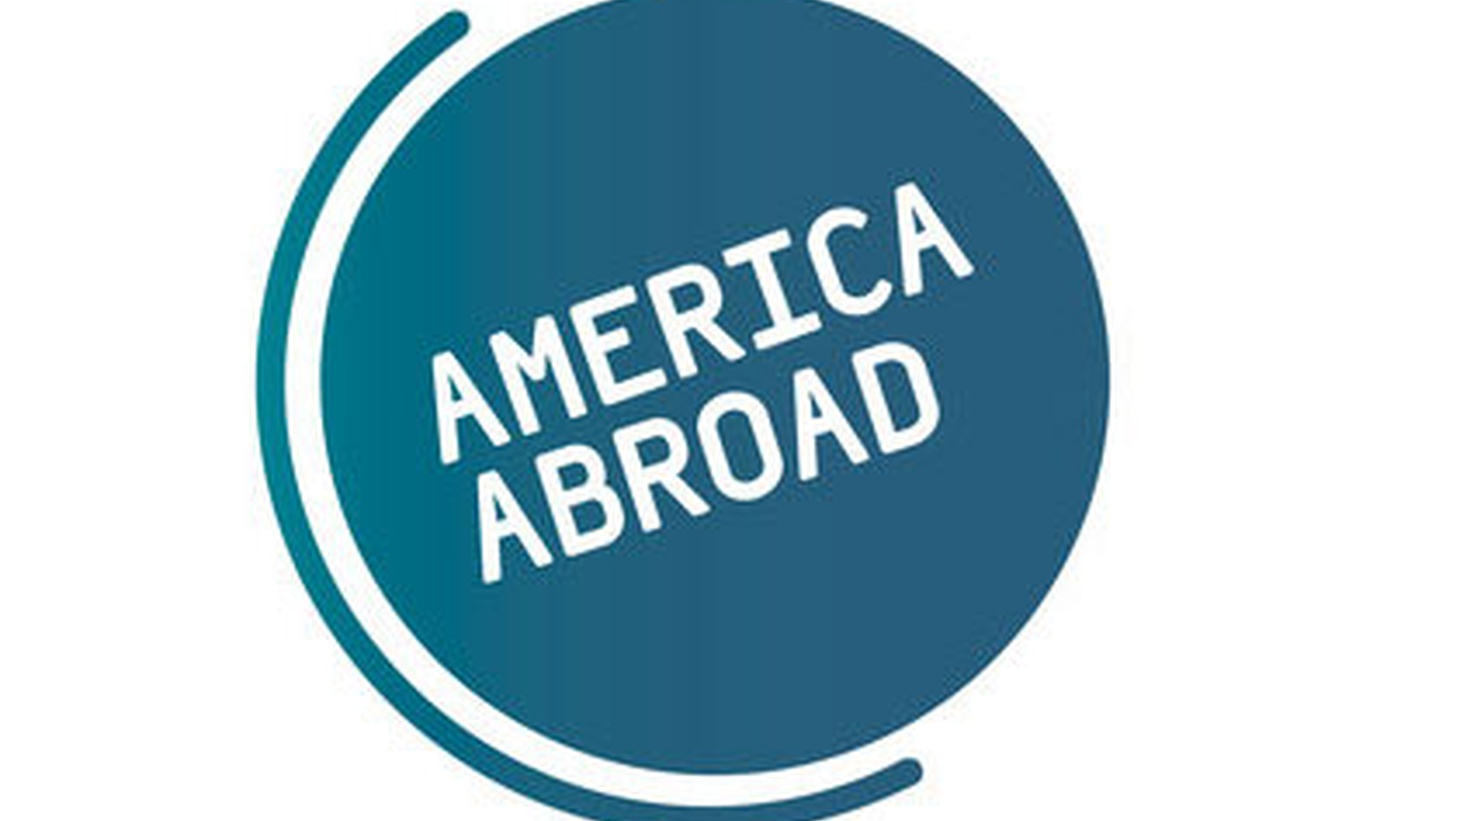 On this edition of America Abroad, we'll circle the globe to see how various countries are tackling the issue of climate change since the historic Paris climate agreement. We check in on two of the world's top carbon producers China and India. Both countries are committed to decreasing their carbon footprints but with different approaches.